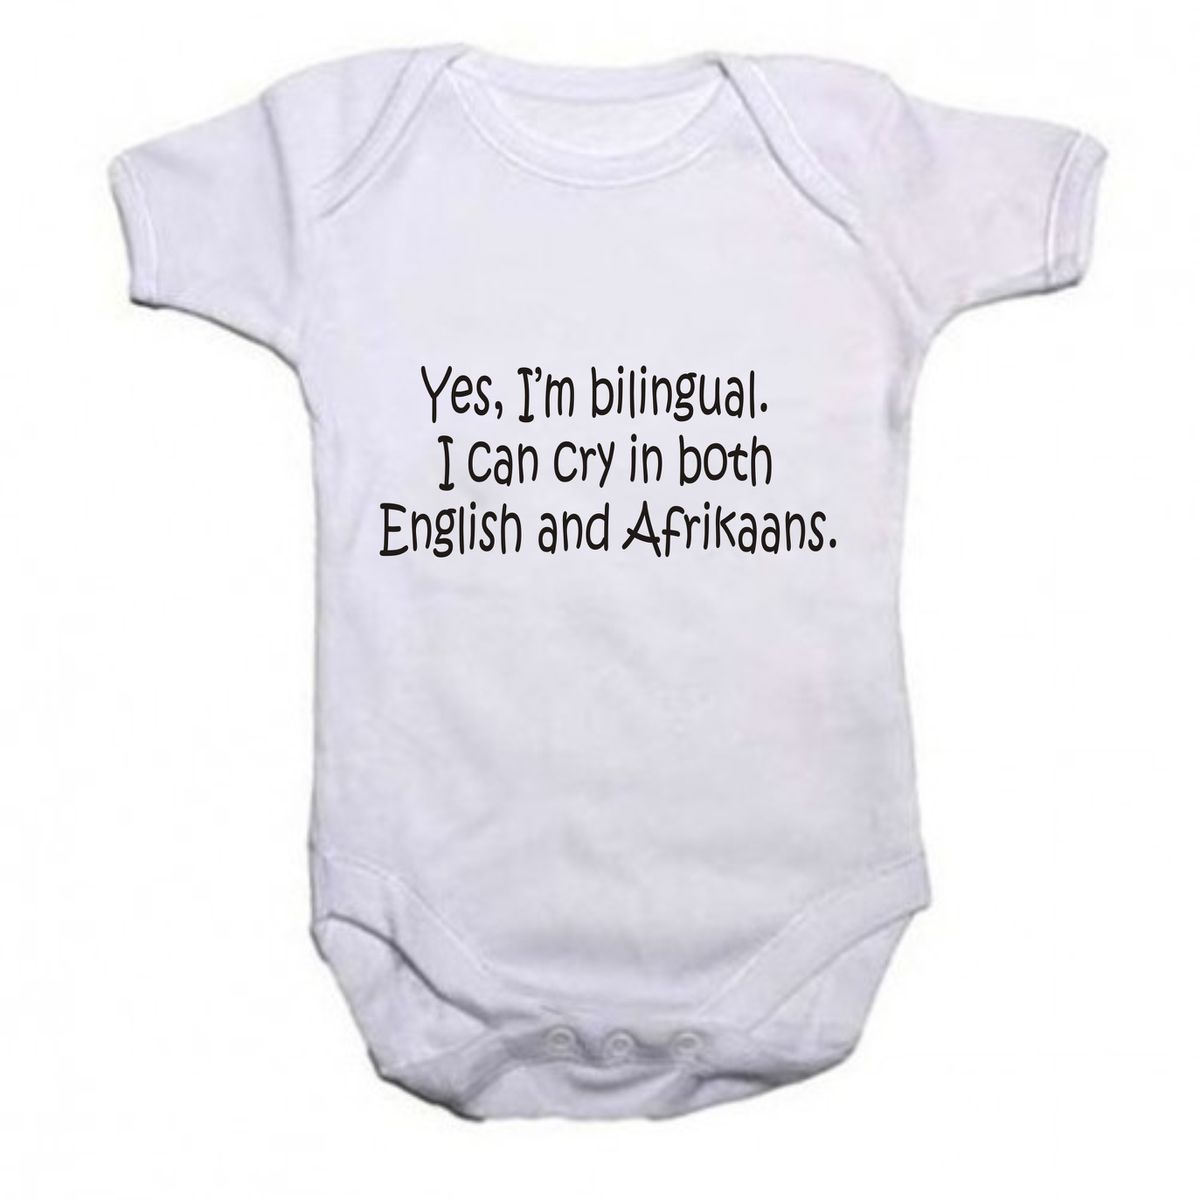 Noveltees cry in english and afrikaans baby grow buy online in noveltees cry in english and afrikaans baby grow loading zoom fandeluxe Choice Image